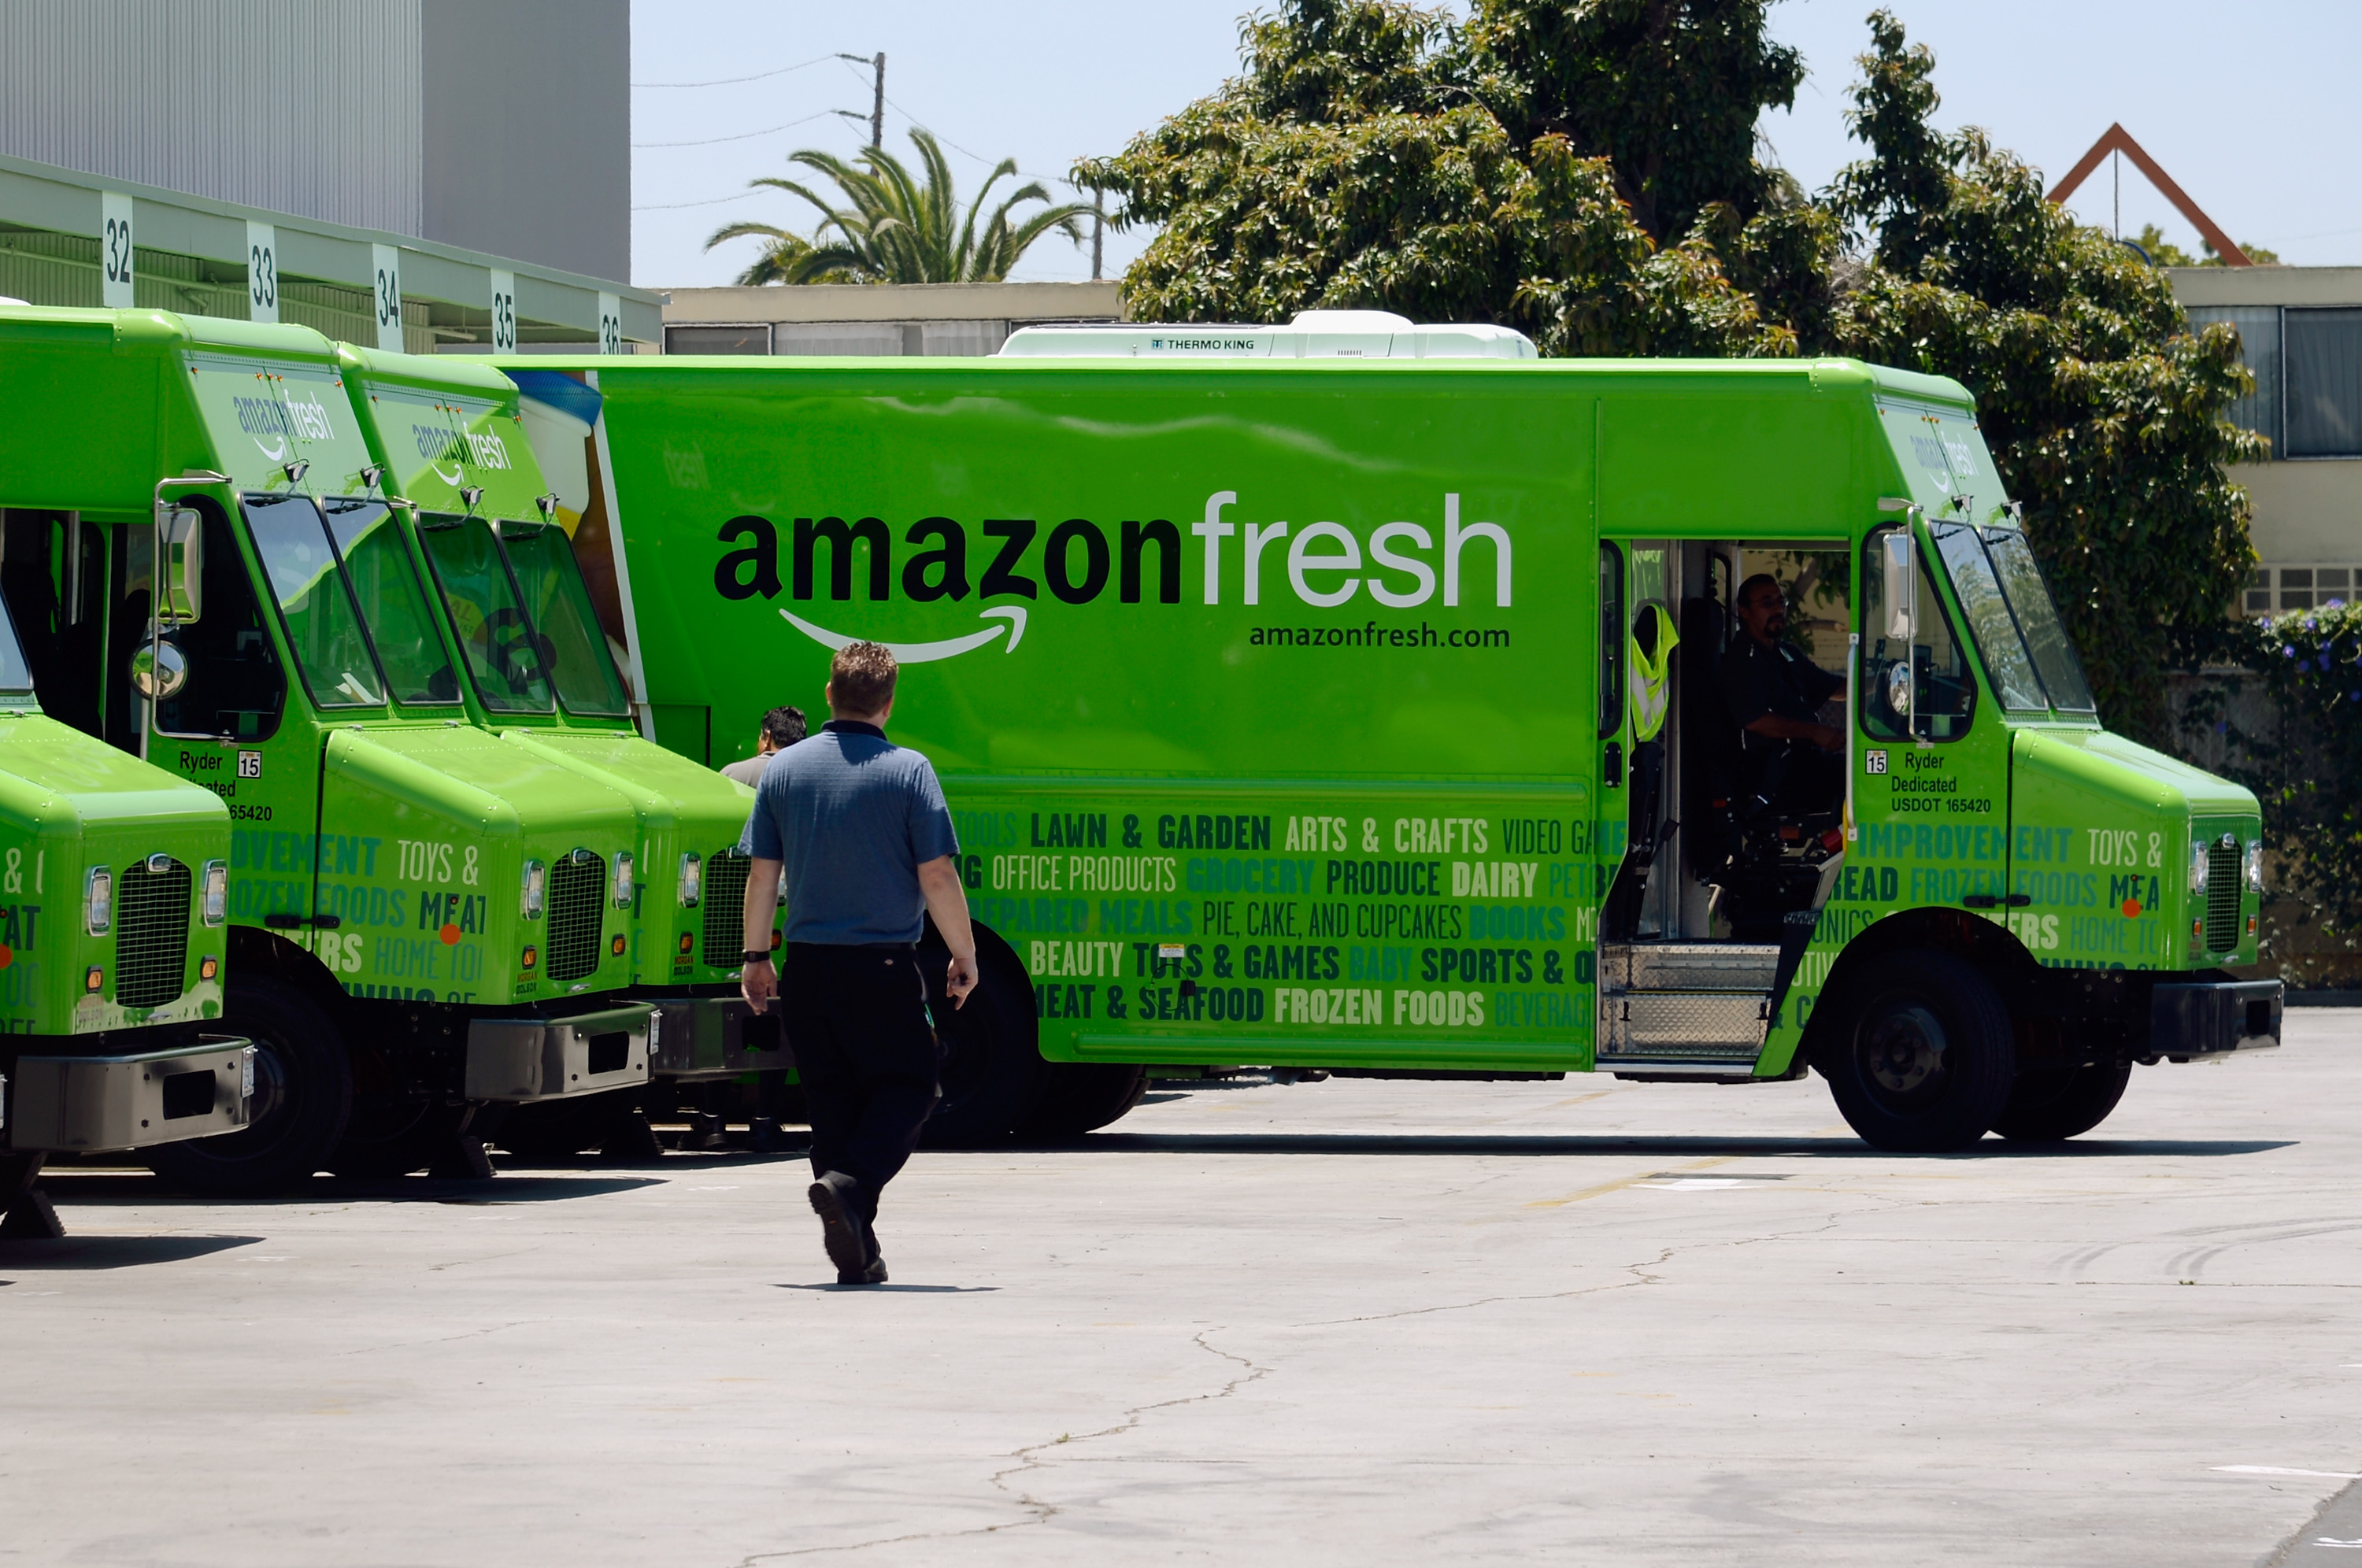 An Amazon Fresh delivery truck pulling out of a loading dock